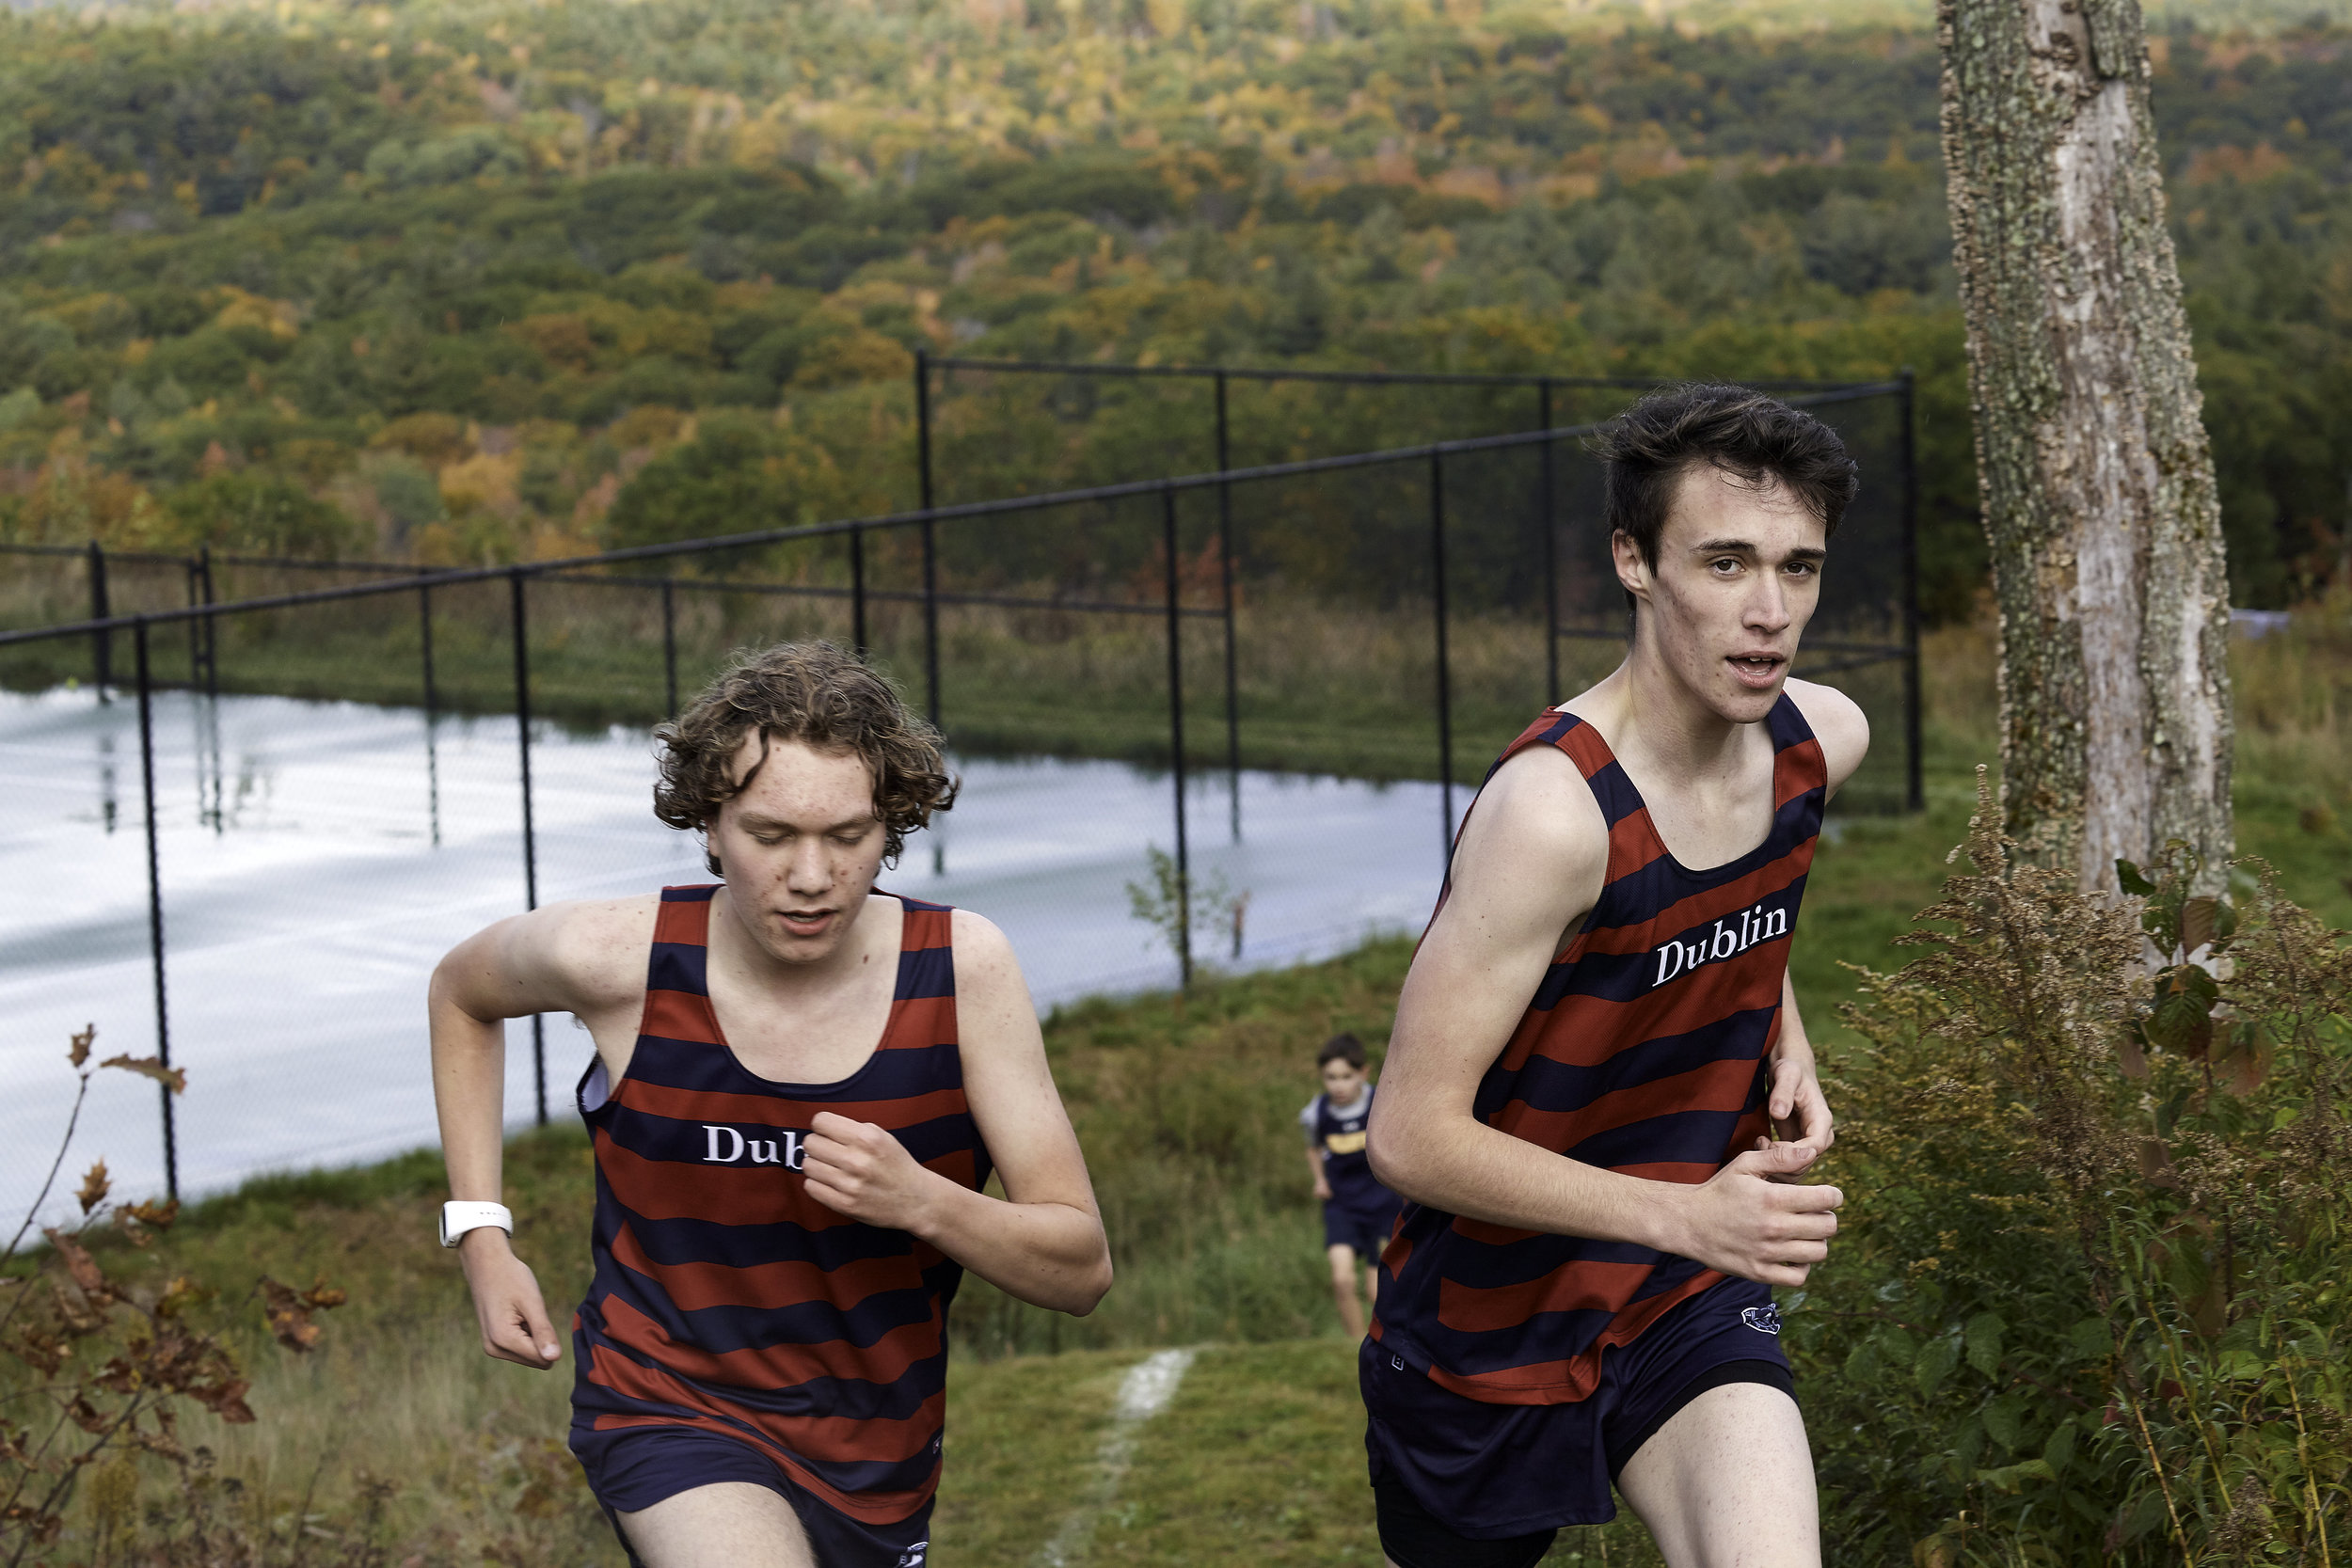 Dublion Invitational - October 12, 2018 - 136608.jpg